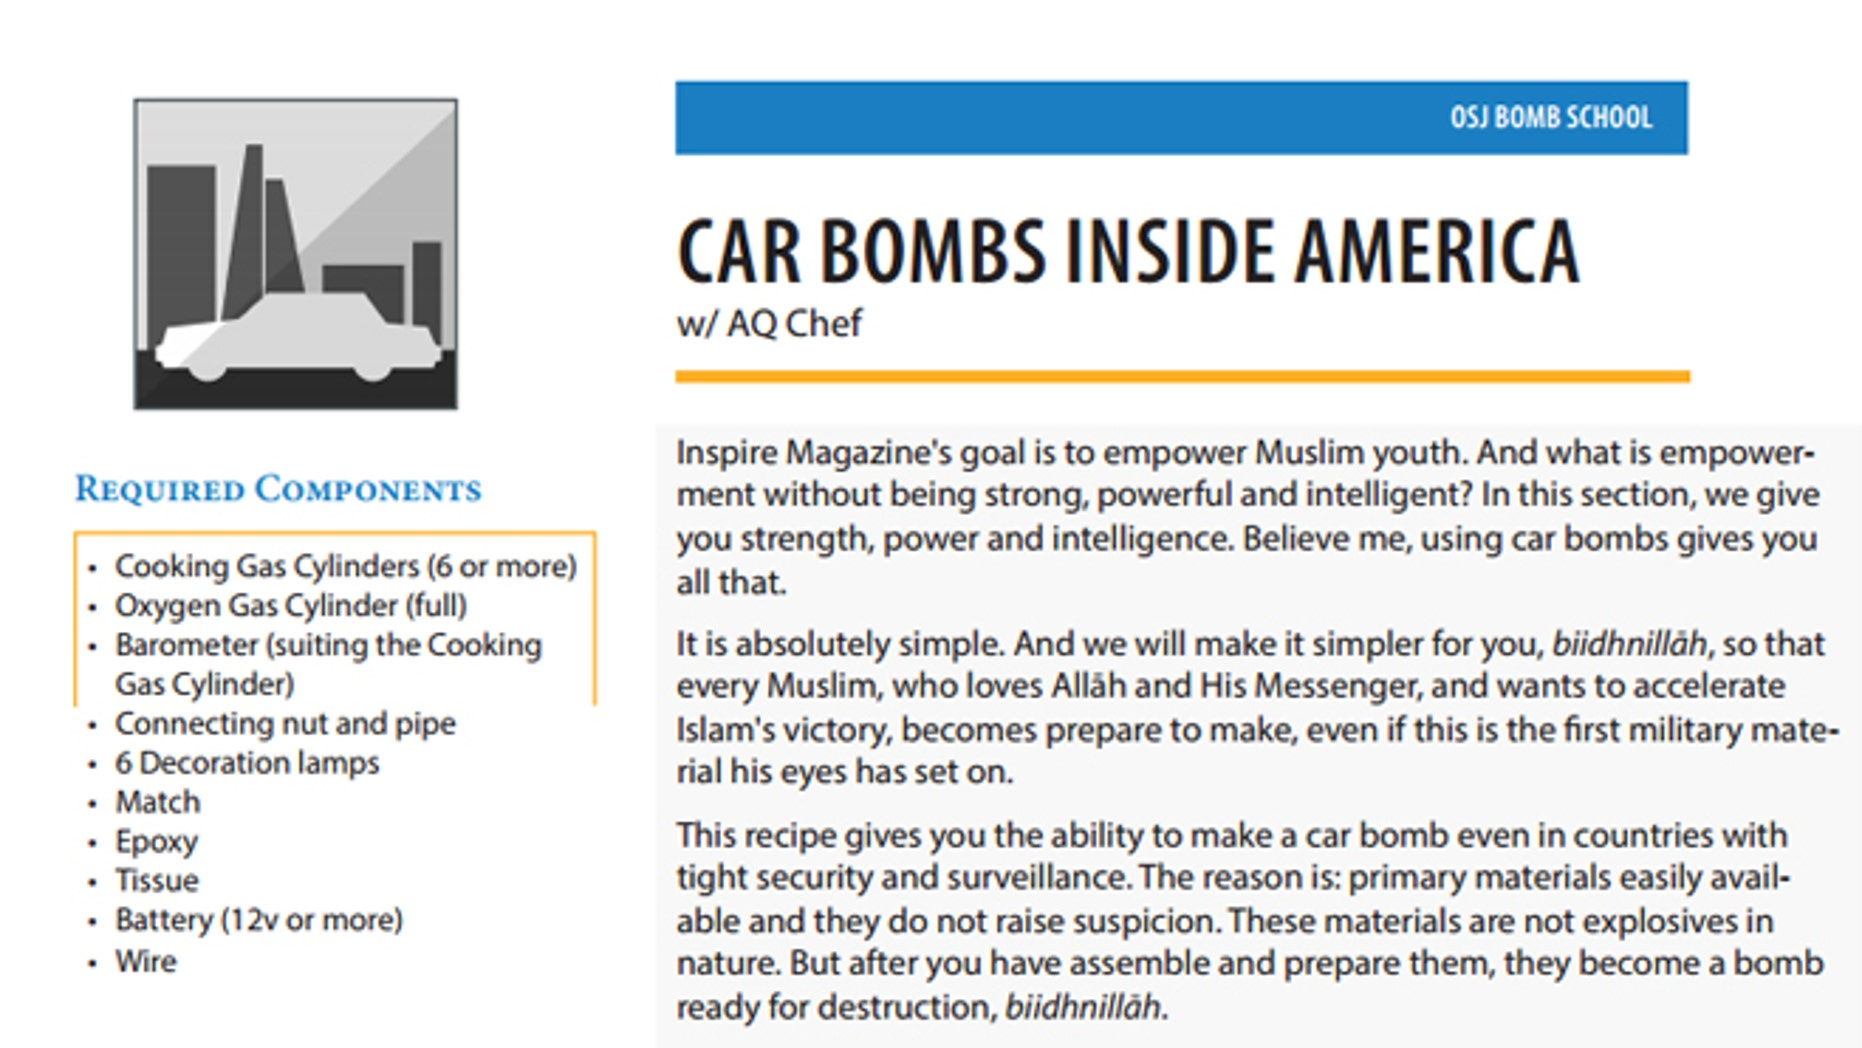 The spring 2014 edition of Inspire magazine, seen above, urges jihadists to target specific U.S. locations using car bombs. Detailed instructions and simple diagrams on every step are provided.